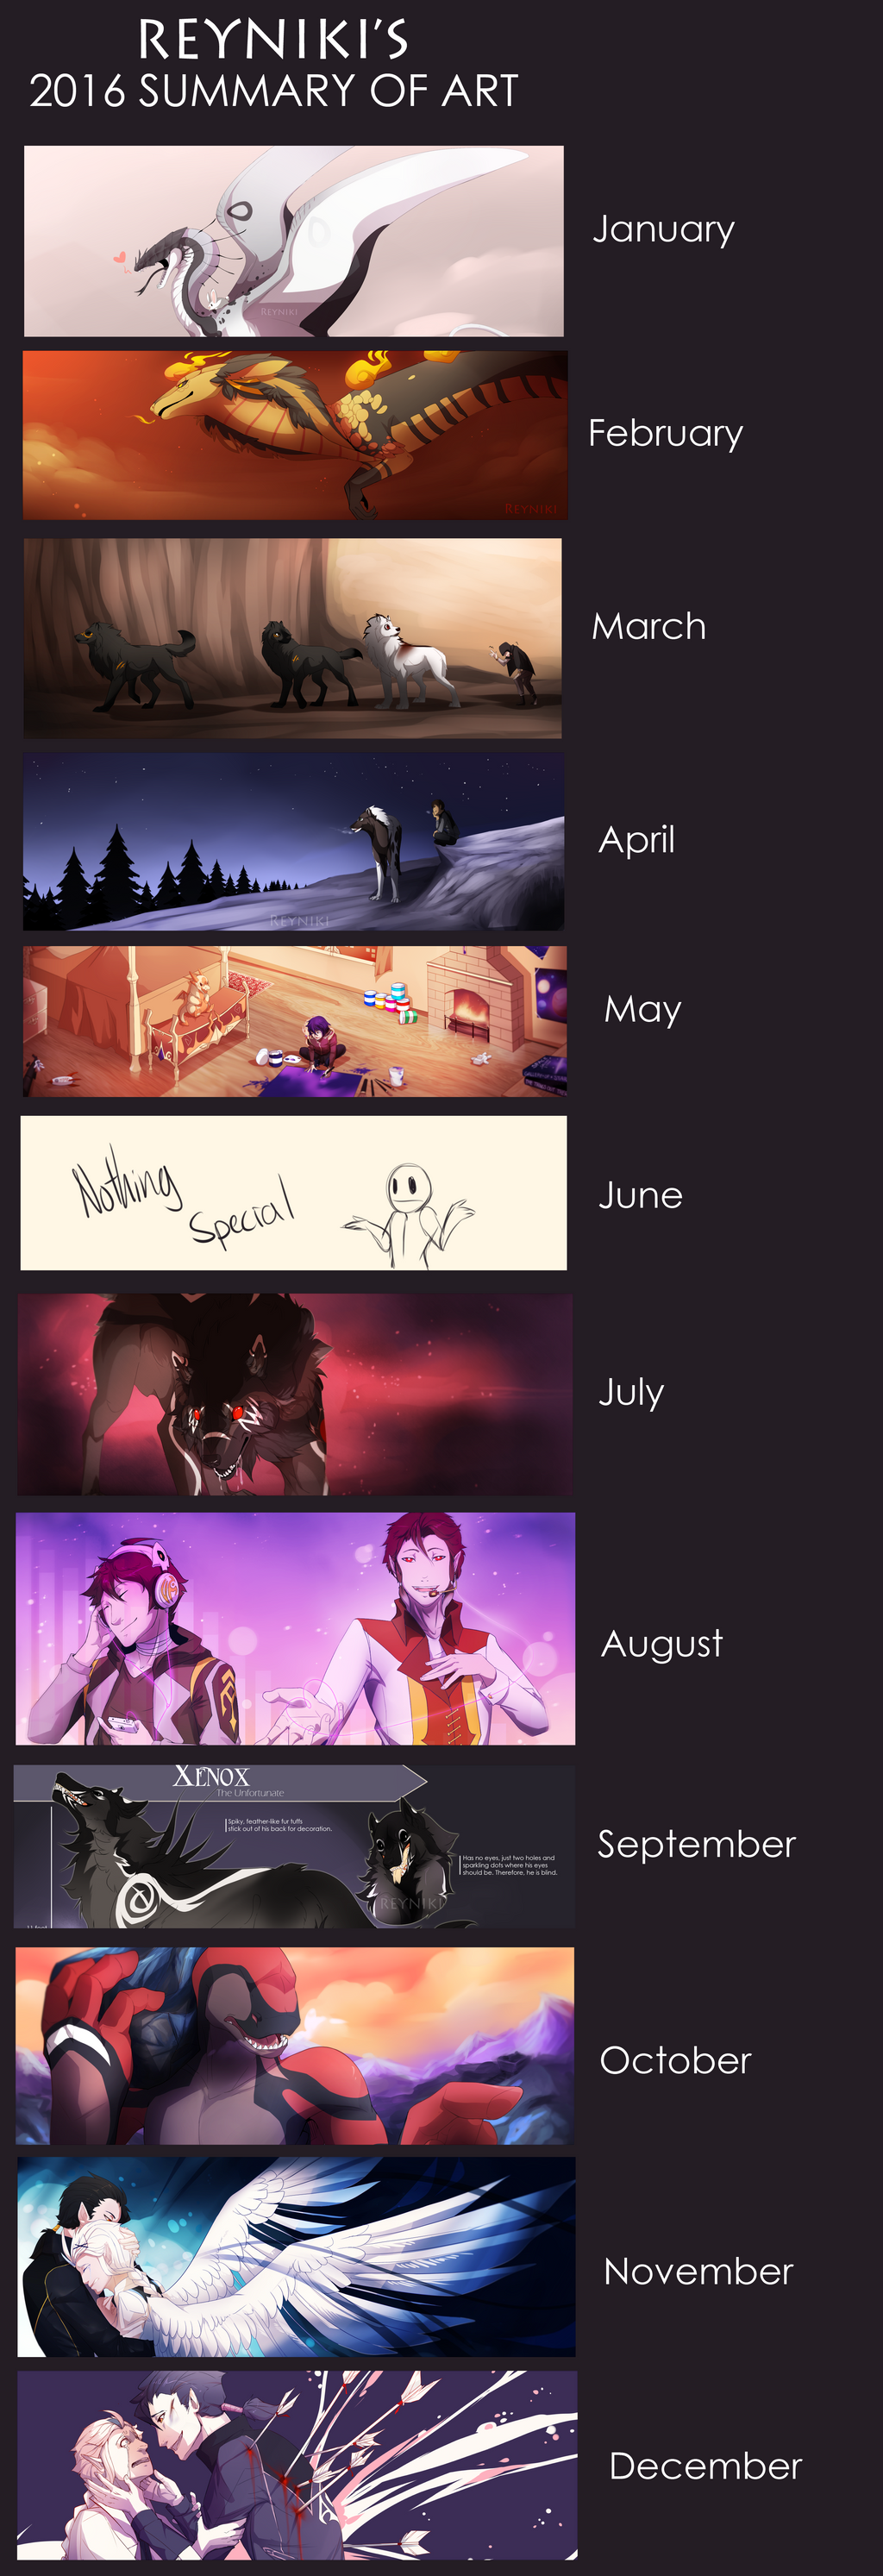 2016 Summary of Art by Reyniki